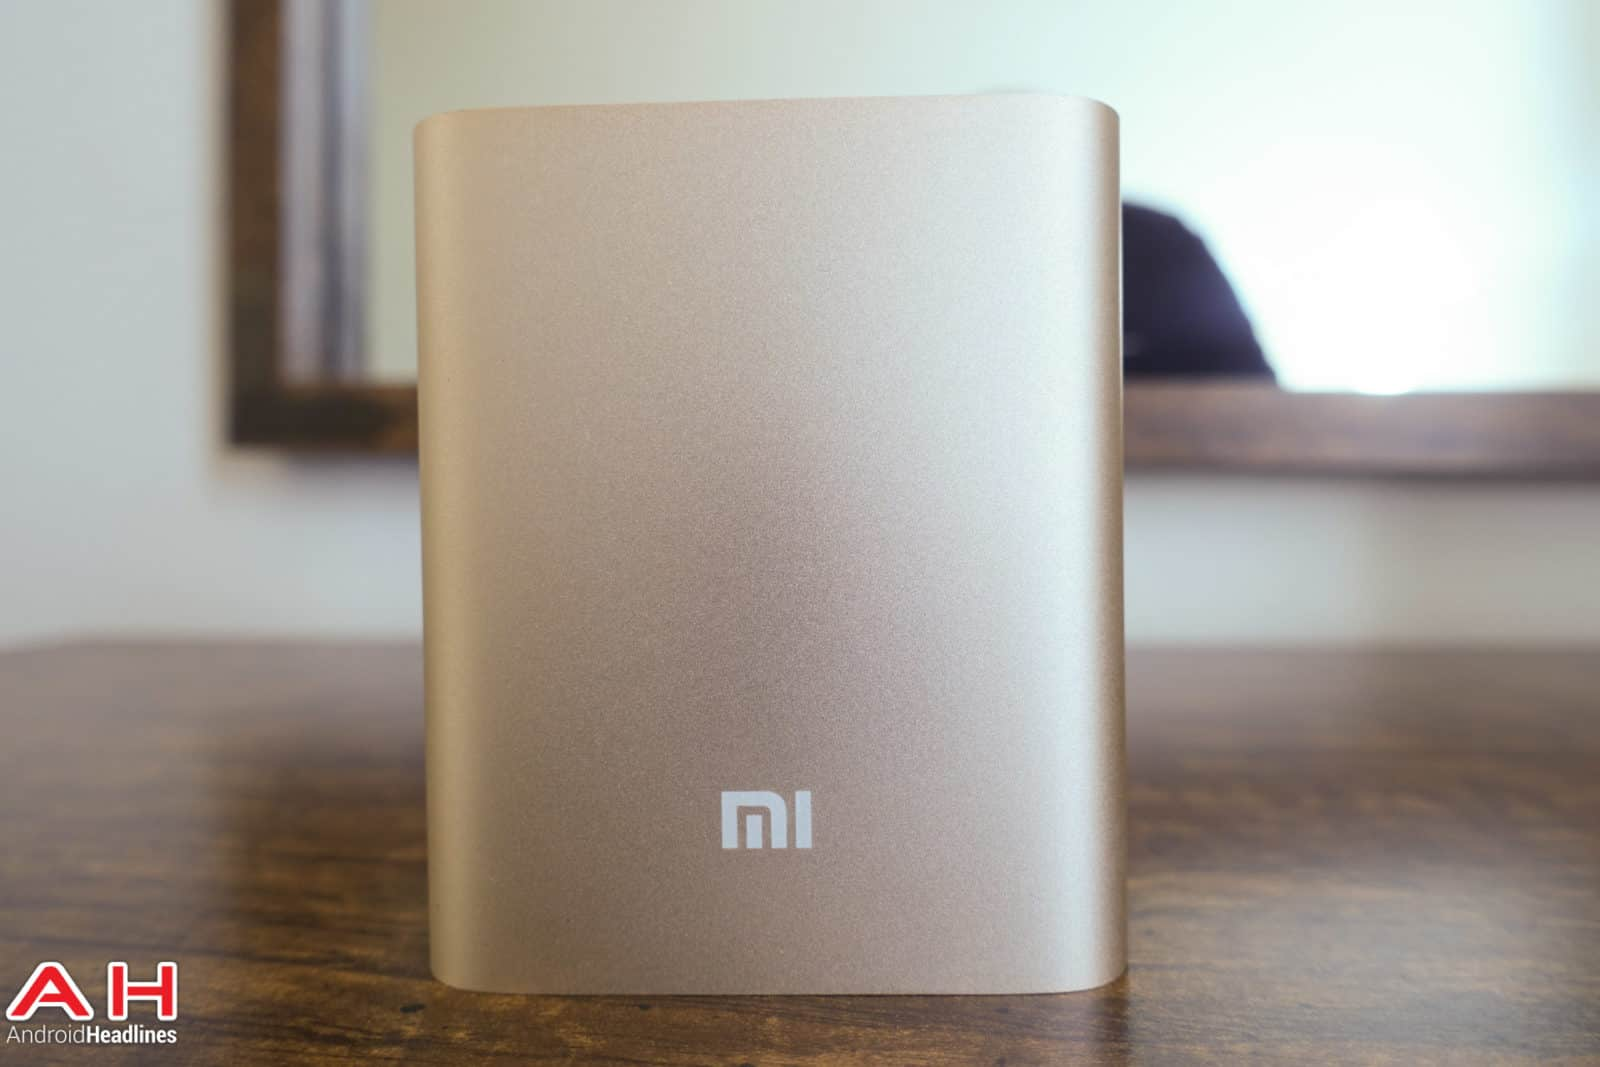 Xiaomi-Mi-Power-Bank-AH-03764